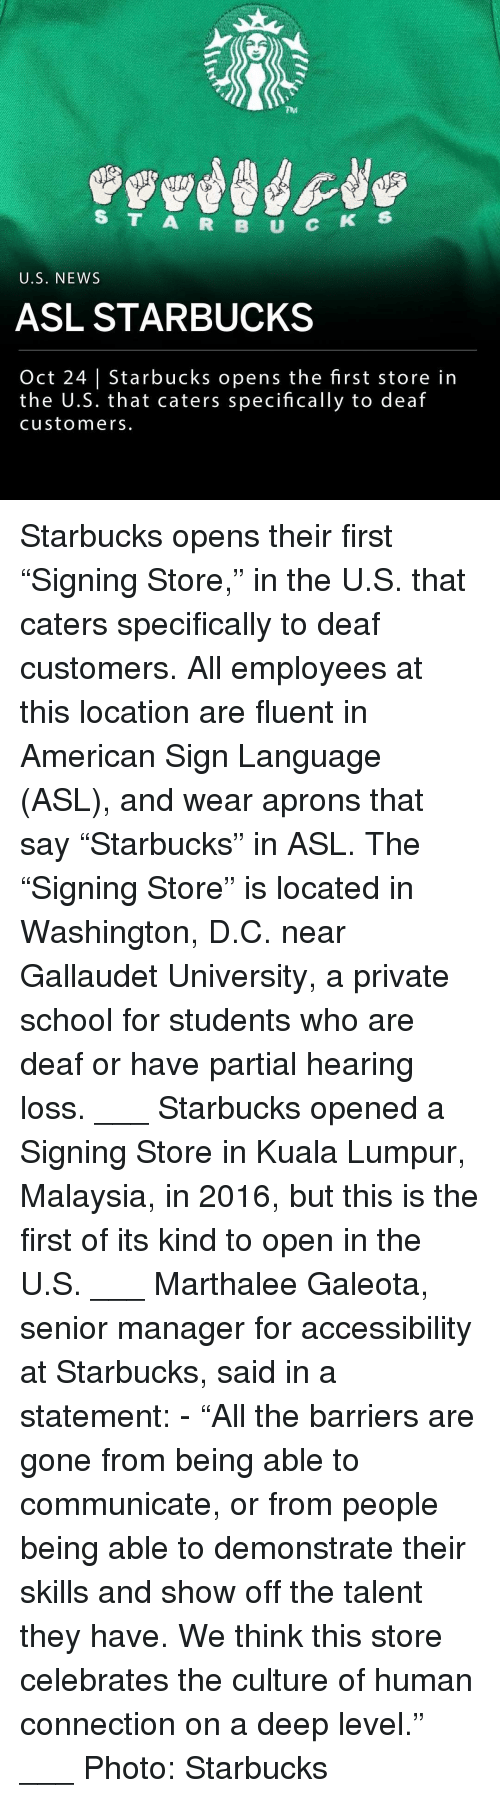 "Memes, News, and School: 704  S T A R B U C  5  U.S. NEWS  ASL STARBUCKS  Oct 24 | Starbucks opens the first store in  the U.S. that caters specifically to deaf  customers. Starbucks opens their first ""Signing Store,"" in the U.S. that caters specifically to deaf customers. All employees at this location are fluent in American Sign Language (ASL), and wear aprons that say ""Starbucks"" in ASL. The ""Signing Store"" is located in Washington, D.C. near Gallaudet University, a private school for students who are deaf or have partial hearing loss. ___ Starbucks opened a Signing Store in Kuala Lumpur, Malaysia, in 2016, but this is the first of its kind to open in the U.S. ___ Marthalee Galeota, senior manager for accessibility at Starbucks, said in a statement: - ""All the barriers are gone from being able to communicate, or from people being able to demonstrate their skills and show off the talent they have. We think this store celebrates the culture of human connection on a deep level."" ___ Photo: Starbucks"